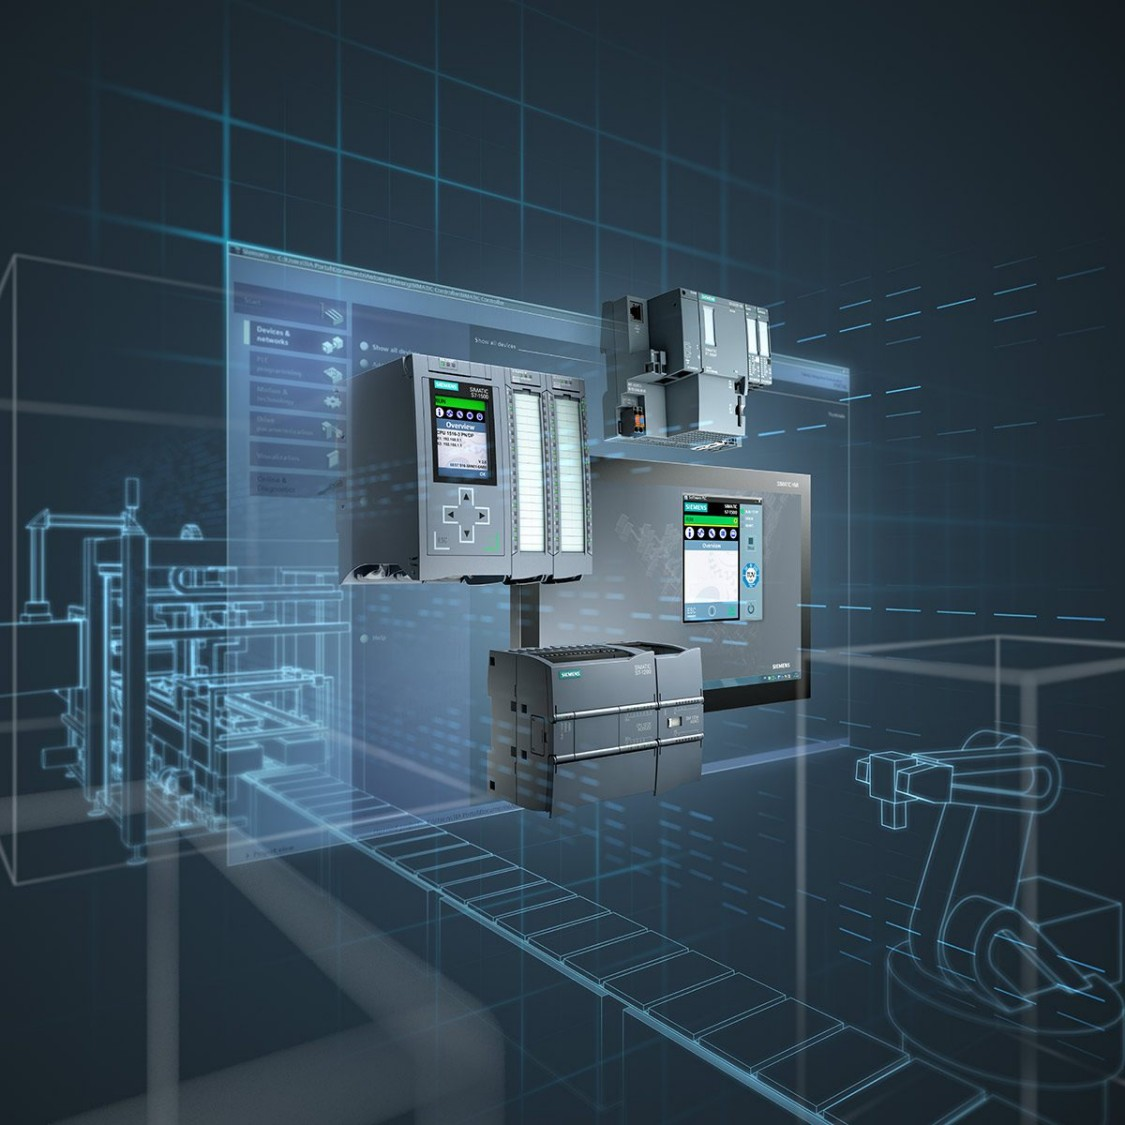 SIMATIC-the automation brand by Siemens